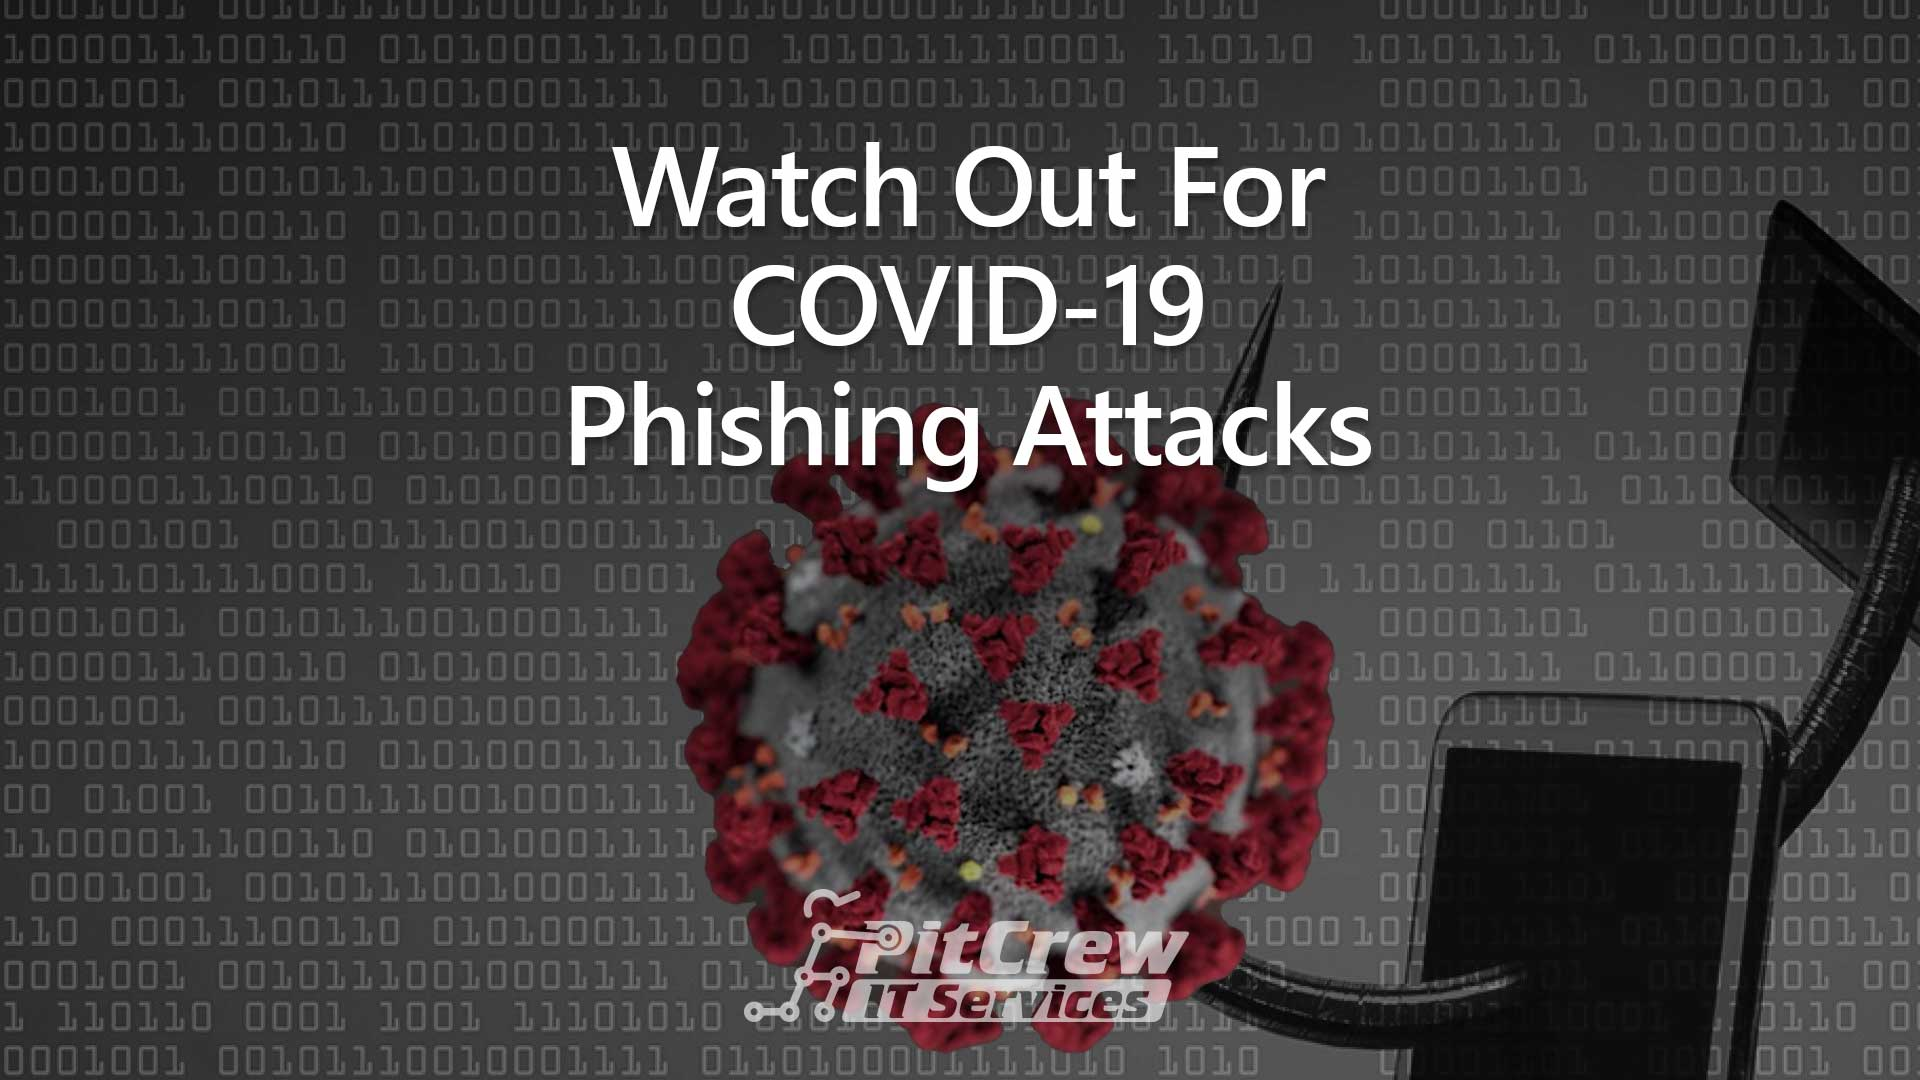 Watch Out For COVID-19 Phishing Attacks